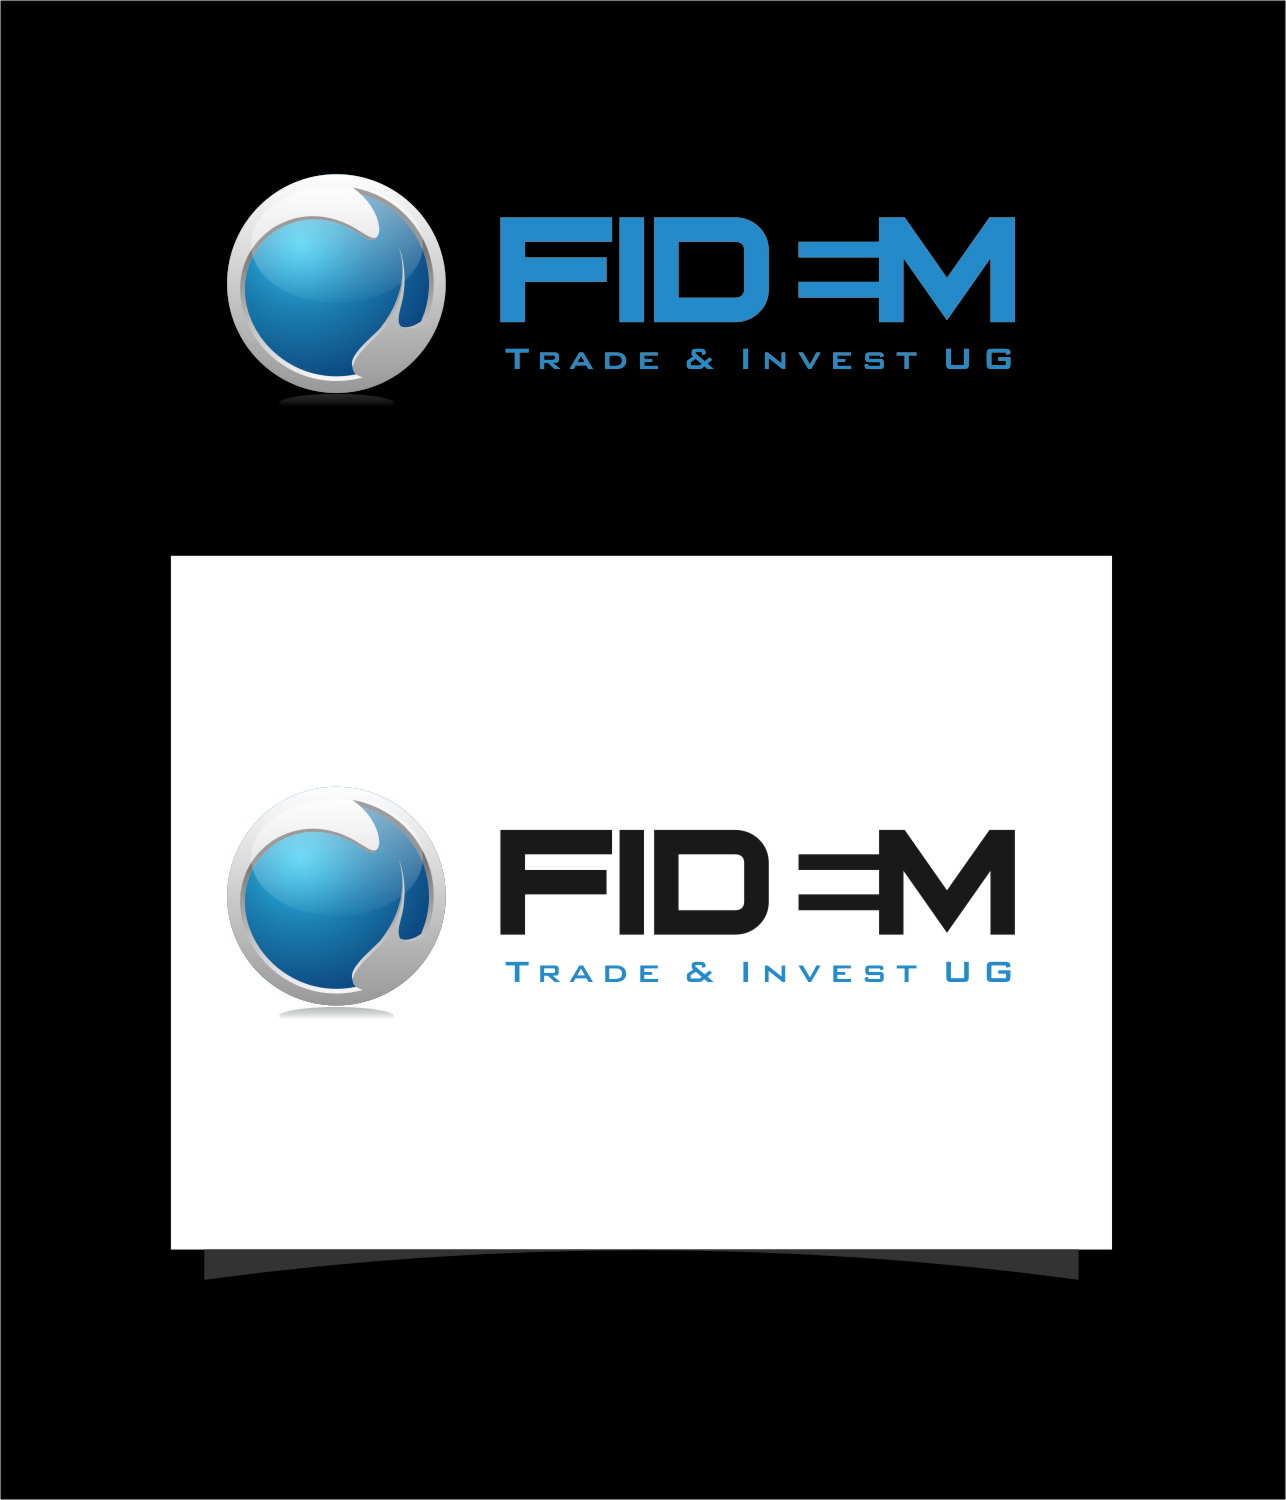 Logo Design by RasYa Muhammad Athaya - Entry No. 515 in the Logo Design Contest Professional Logo Design for FIDEM Trade & Invest UG.